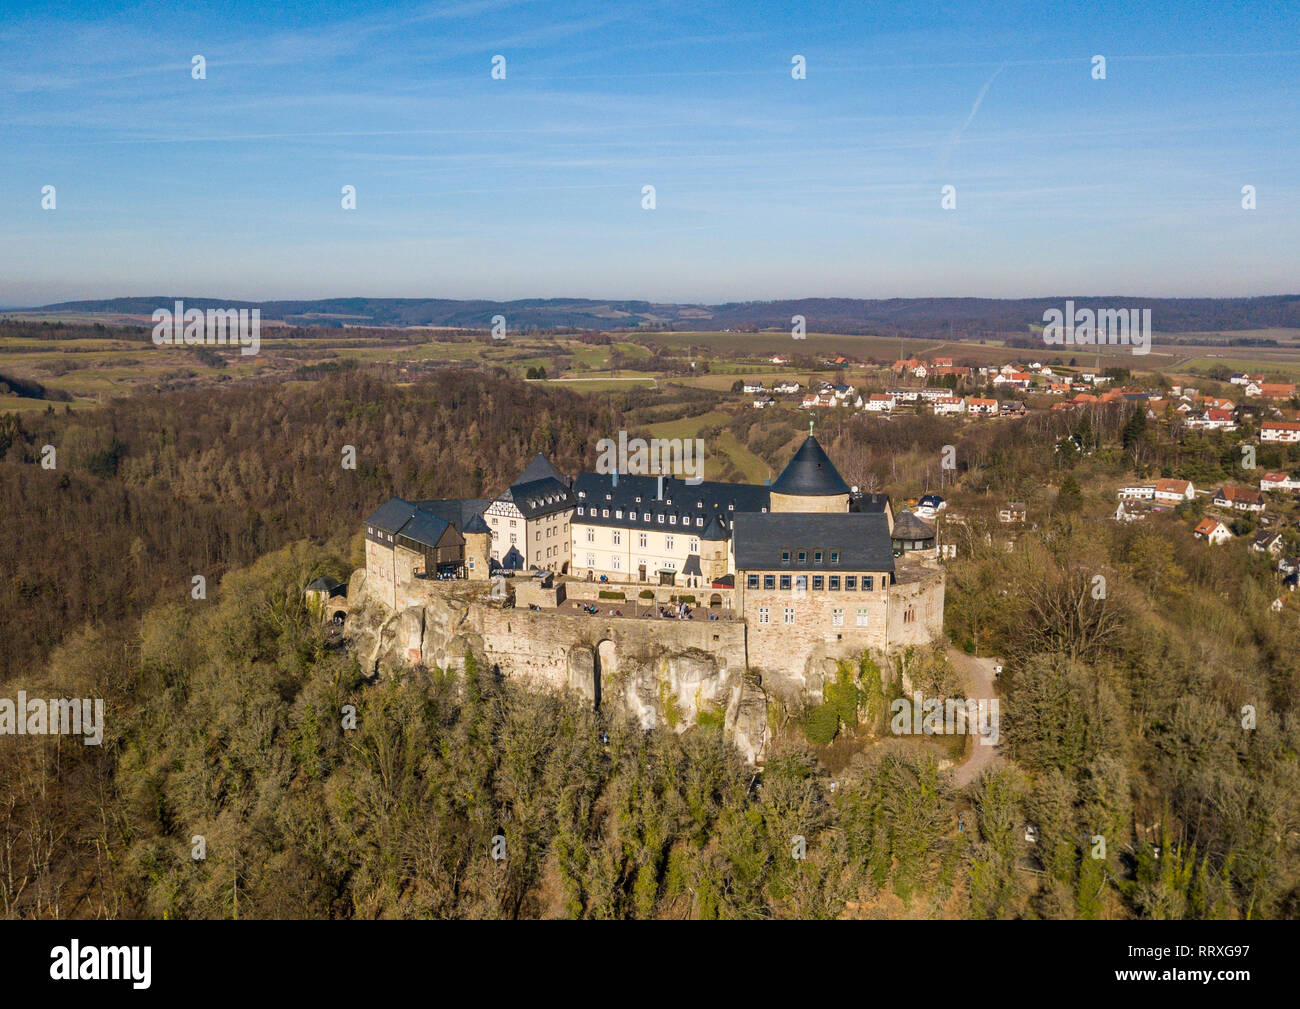 Aerial view of Waldeck castle in the Edersee Nature Park, Germany - Stock Image